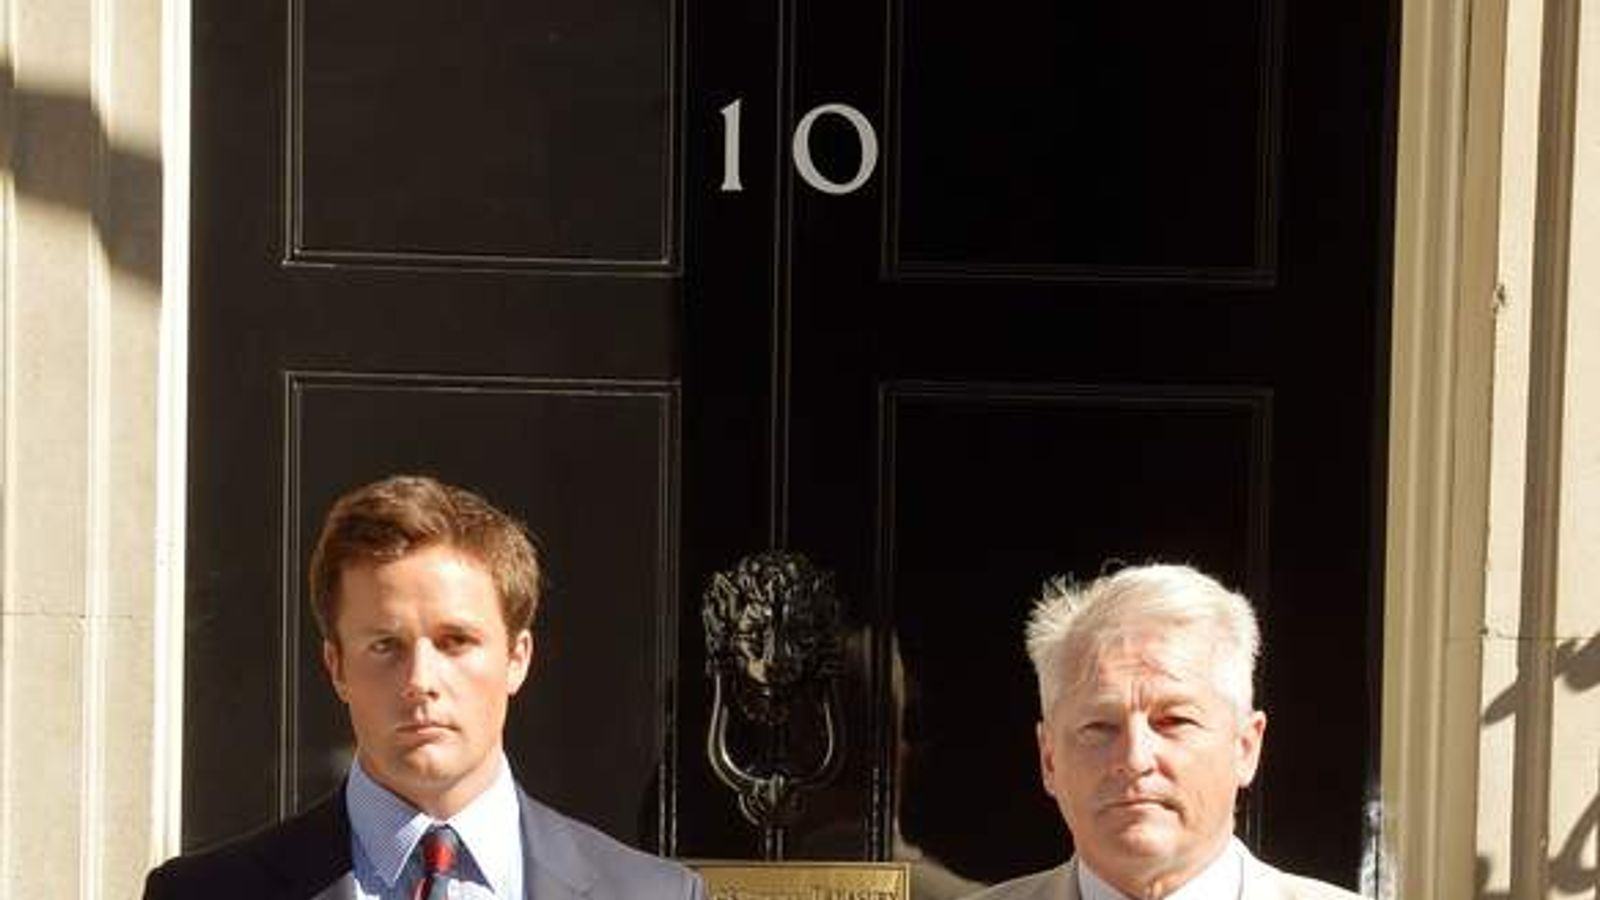 Alexander Perkins and Tim Collins outside No10